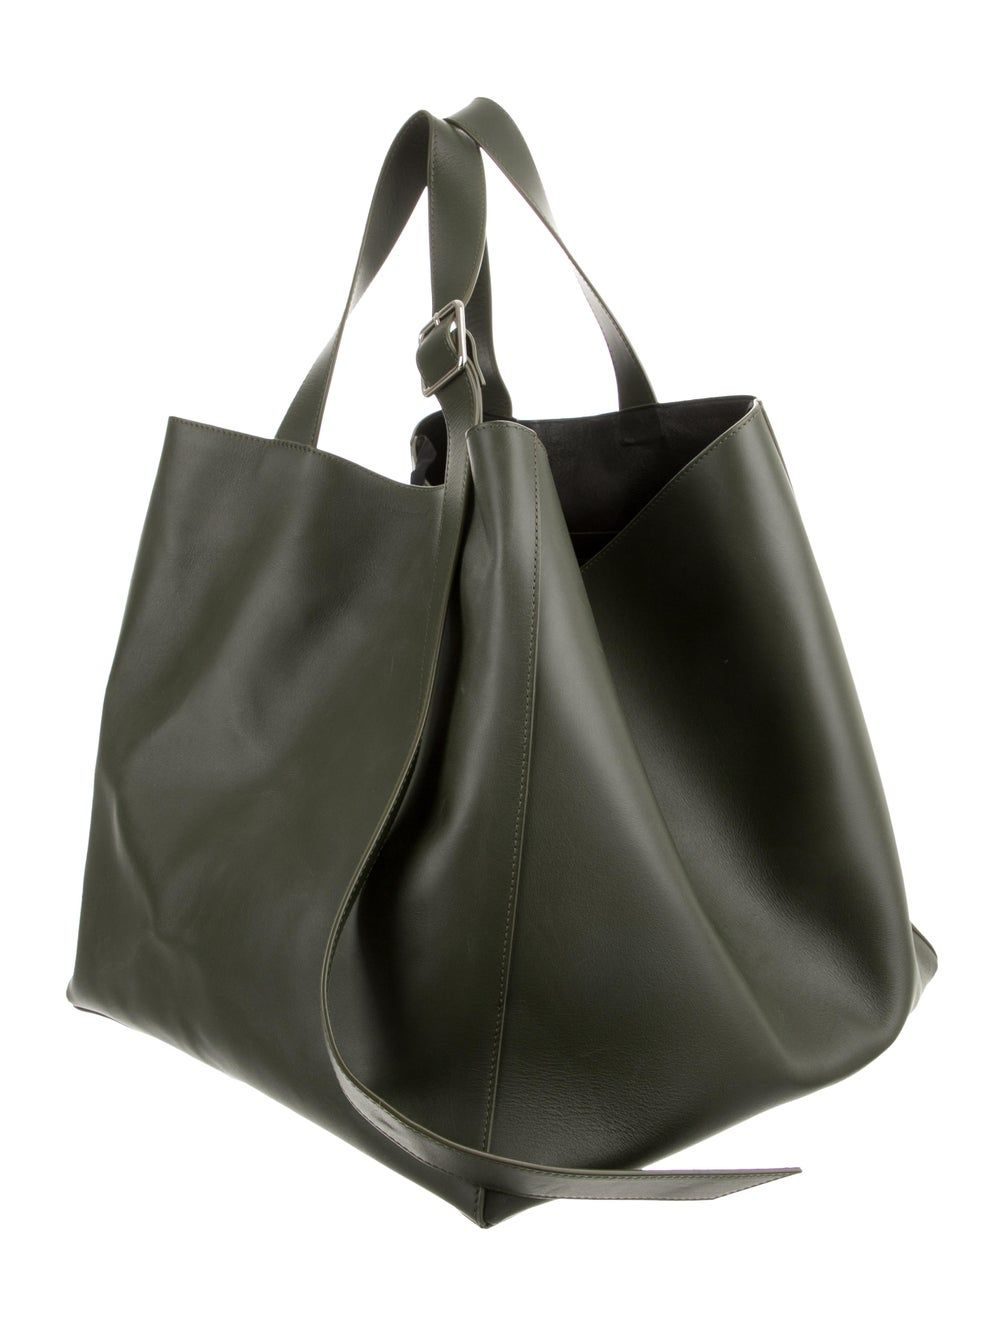 calvin klein 205w39nyc leather tote bag bags on watchman on the wall calvin id=78243